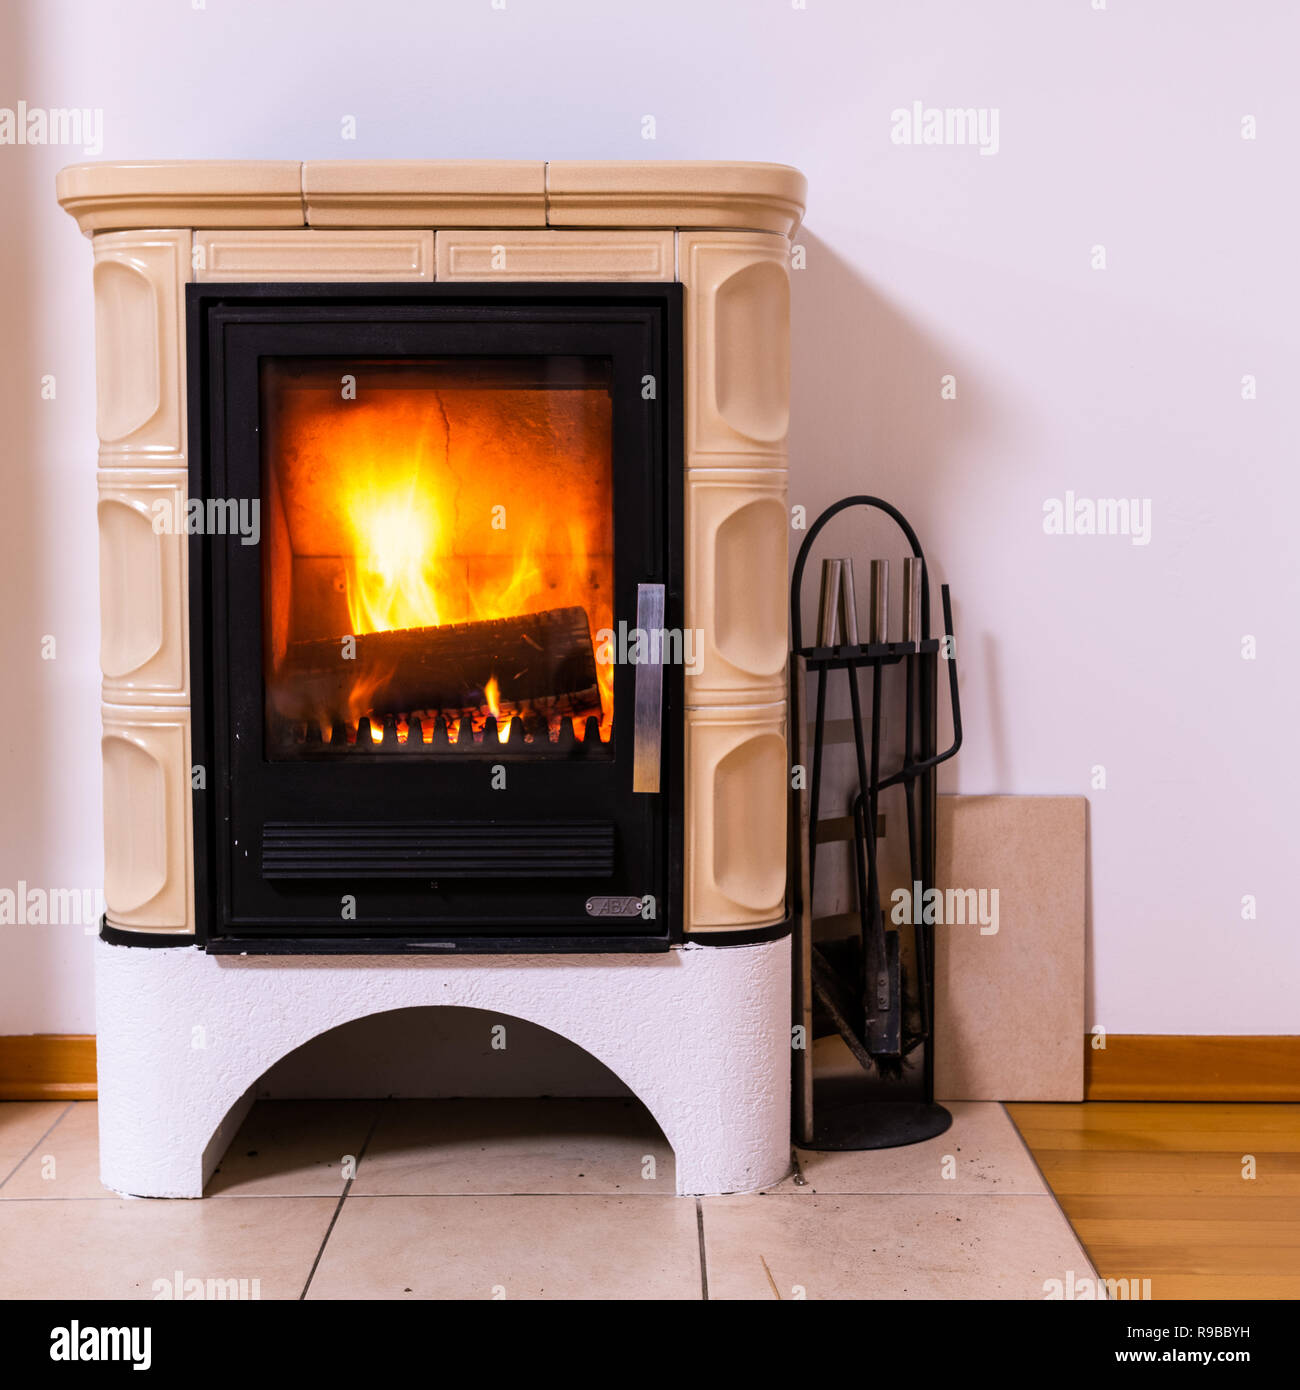 Tiled stove with fire burning inside, cosy and warm interior scene, heating in winter - Stock Image